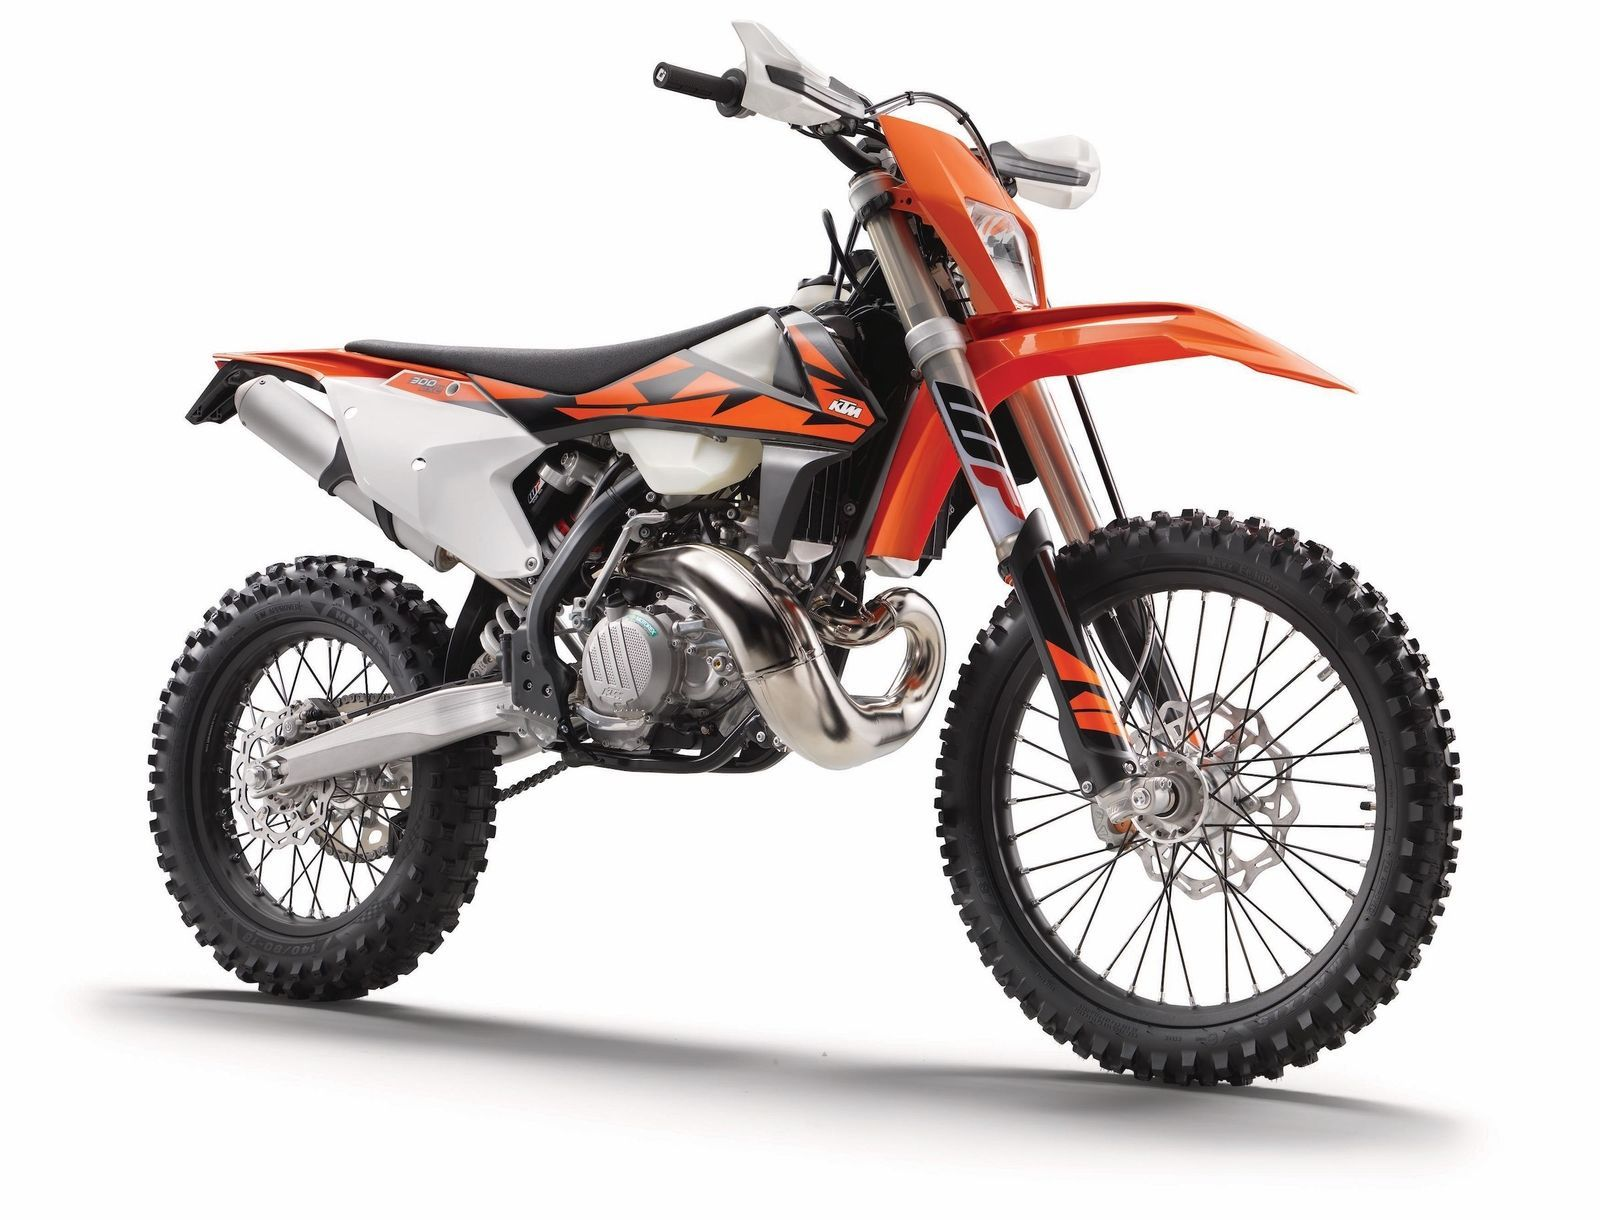 Ktm S New Fuel Injected Two Strokes Could Save The Endangered